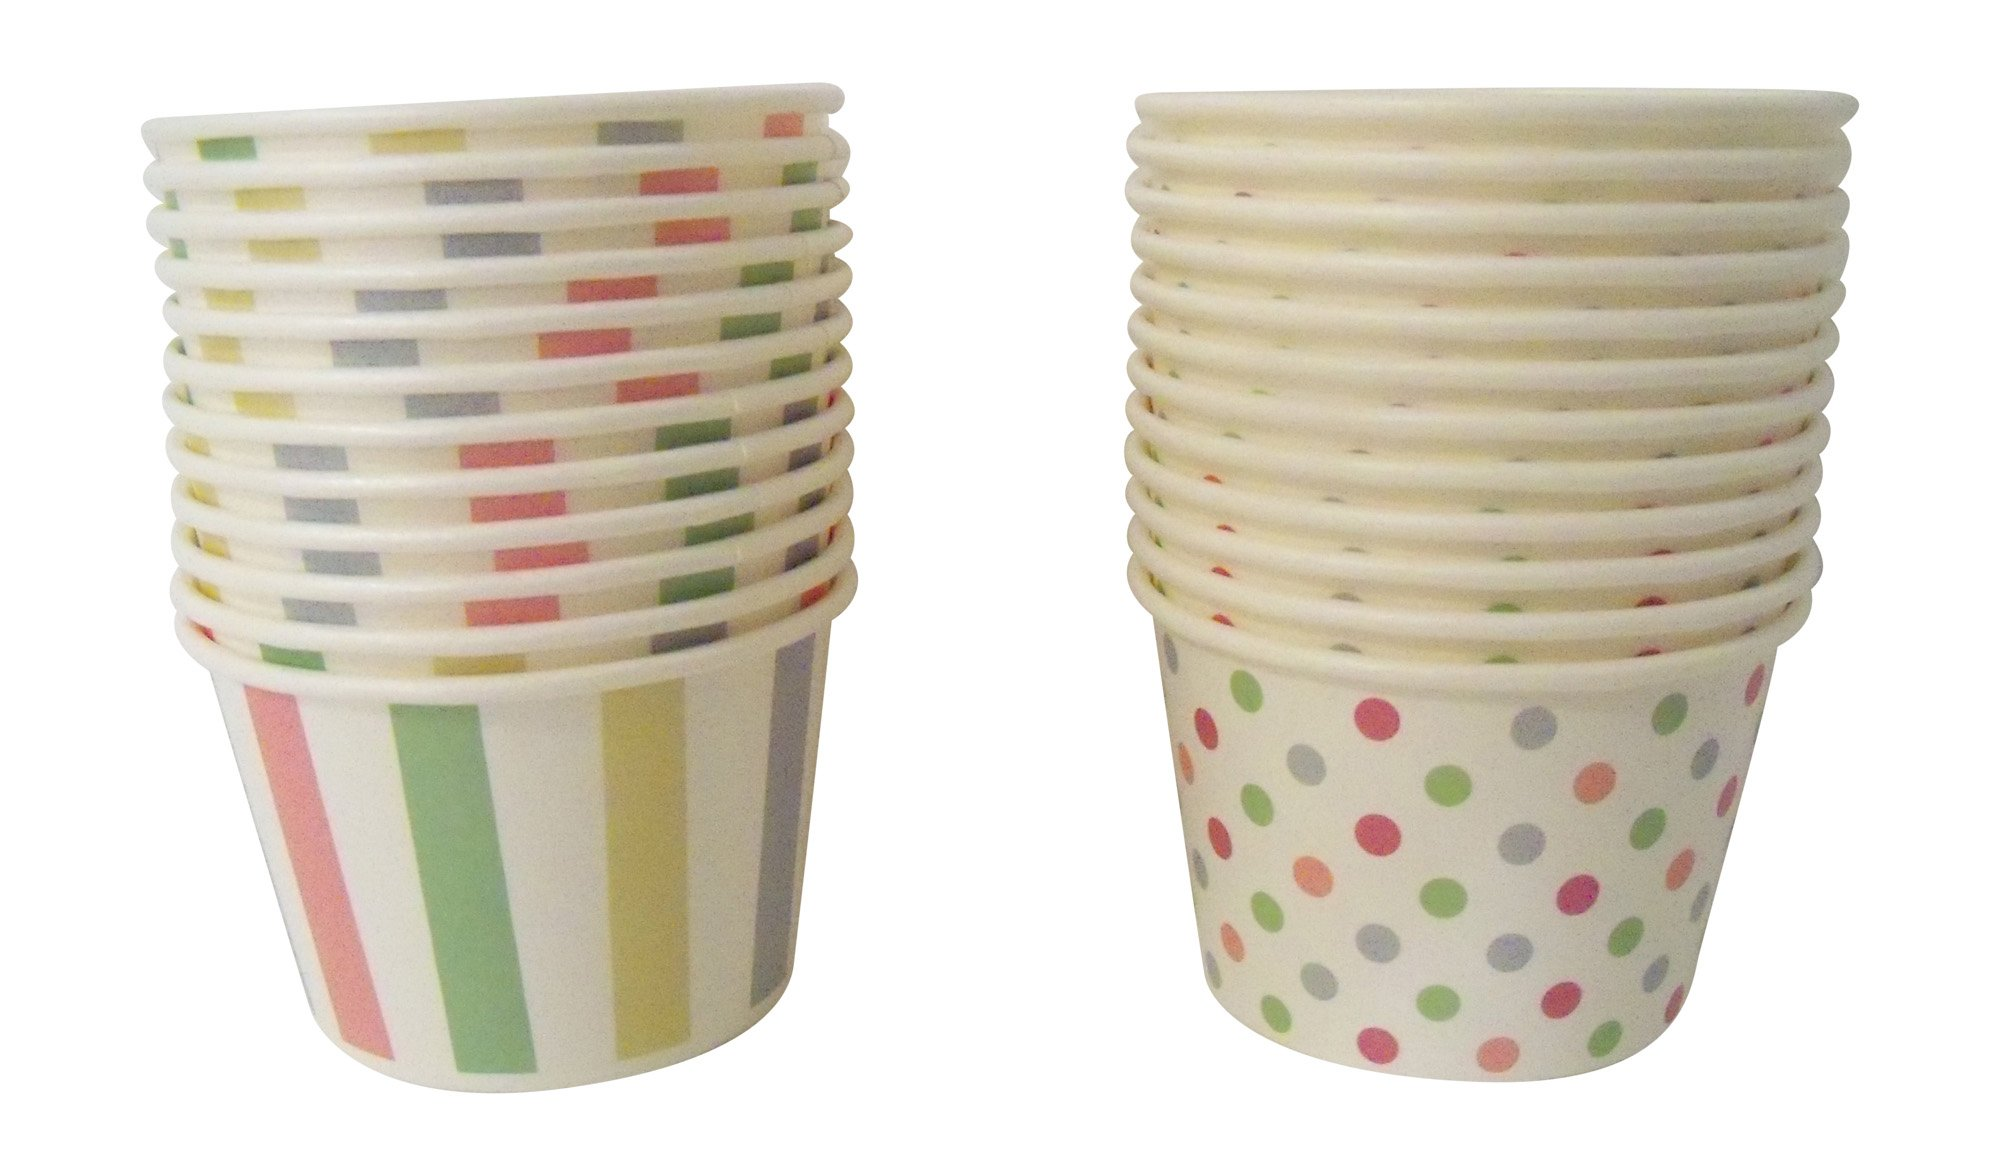 Paper Ice Cream Cups - Pastel Stripes & Polka Dots Design, 24 Count